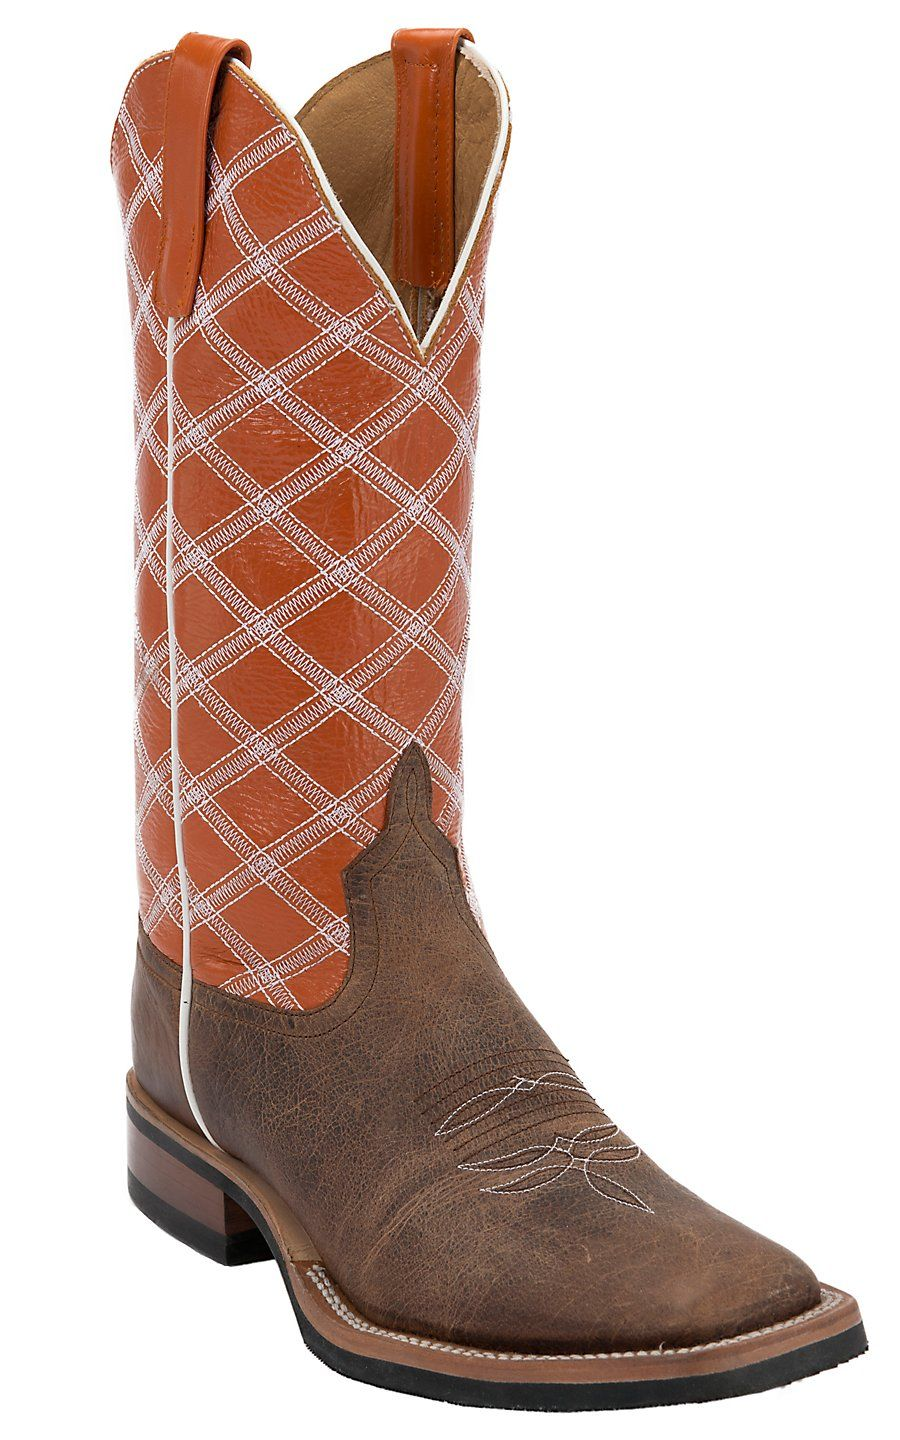 Anderson Bean Horse Power Men S Toast Bison With Burnt Orange Double Welt Square Toe Cowboy Boot Boots Mens Square Toe Boots Square Toe Boots